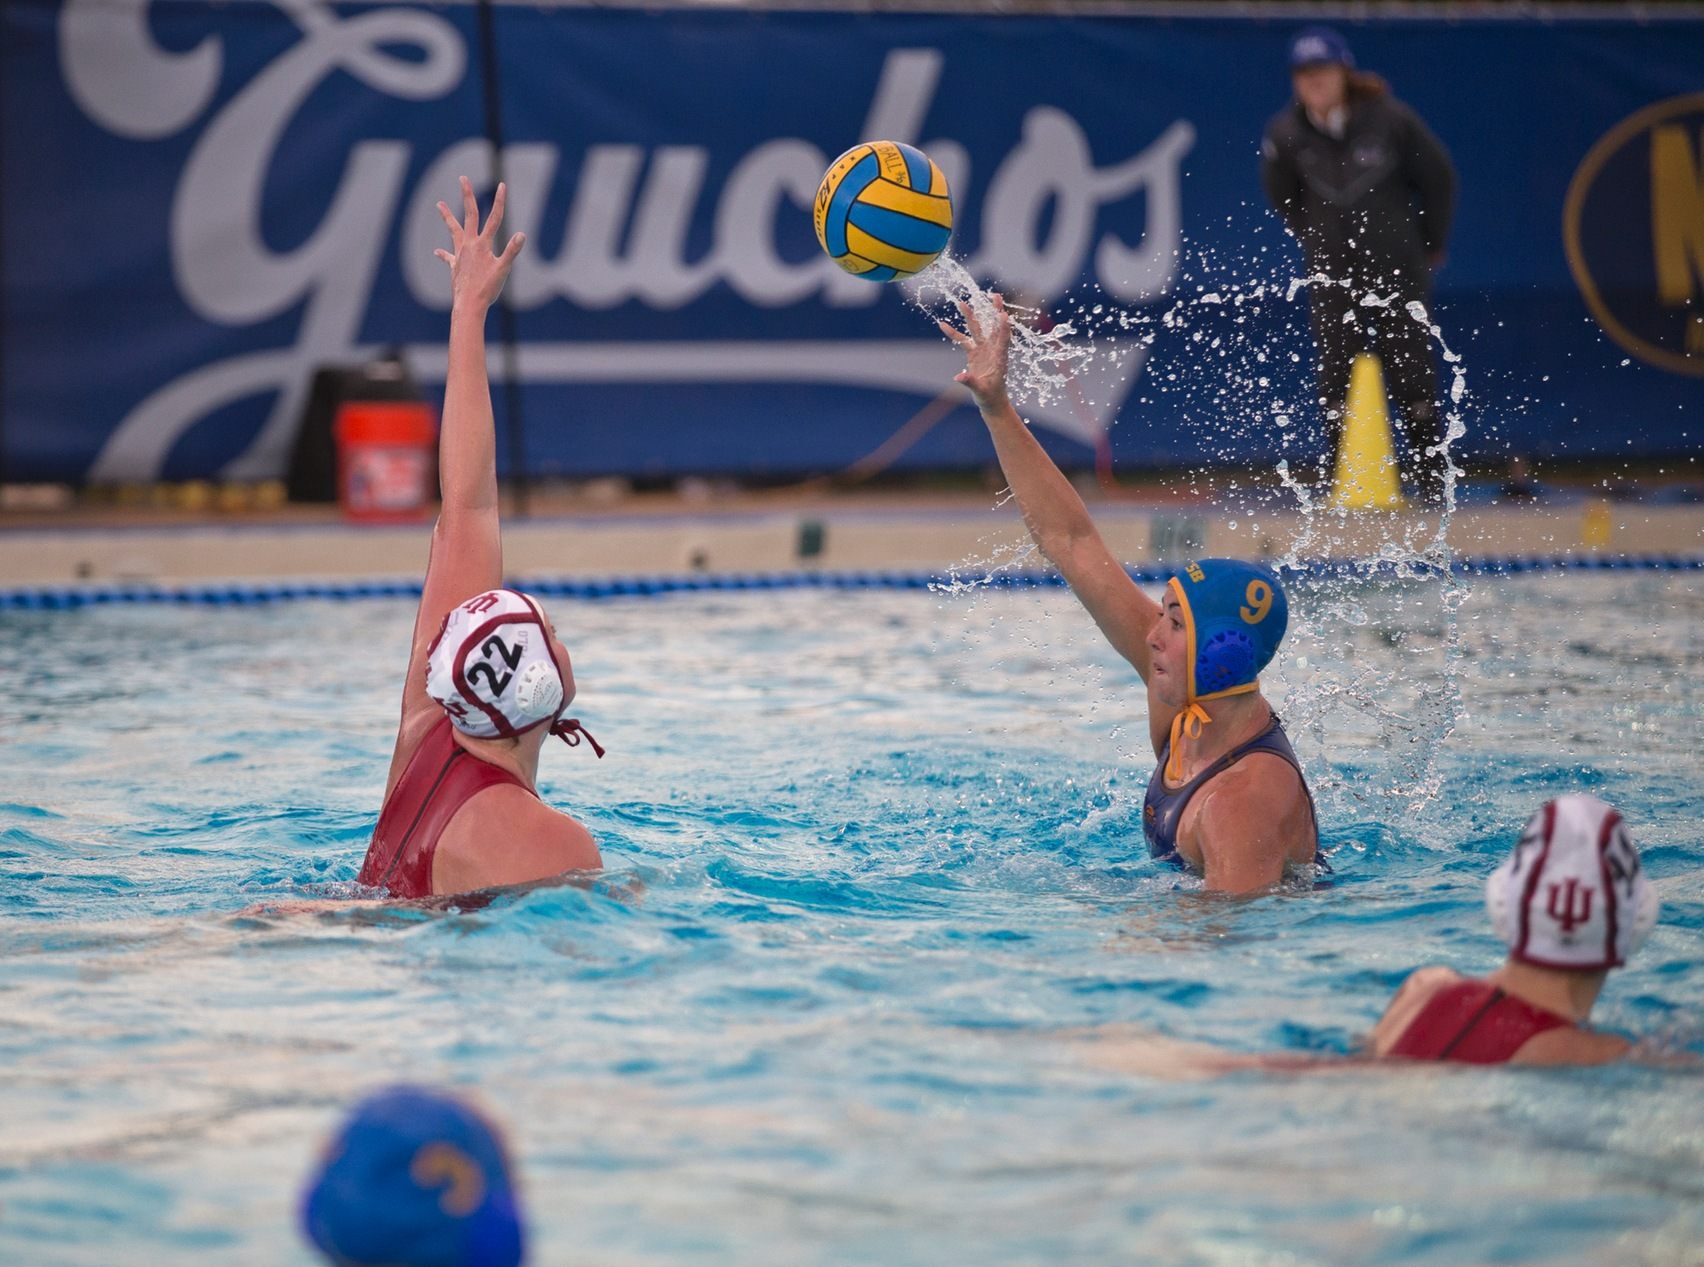 Gauchos Take Down Pair of Top 25 Teams In Day 1 Of 2017 Winter Invitational